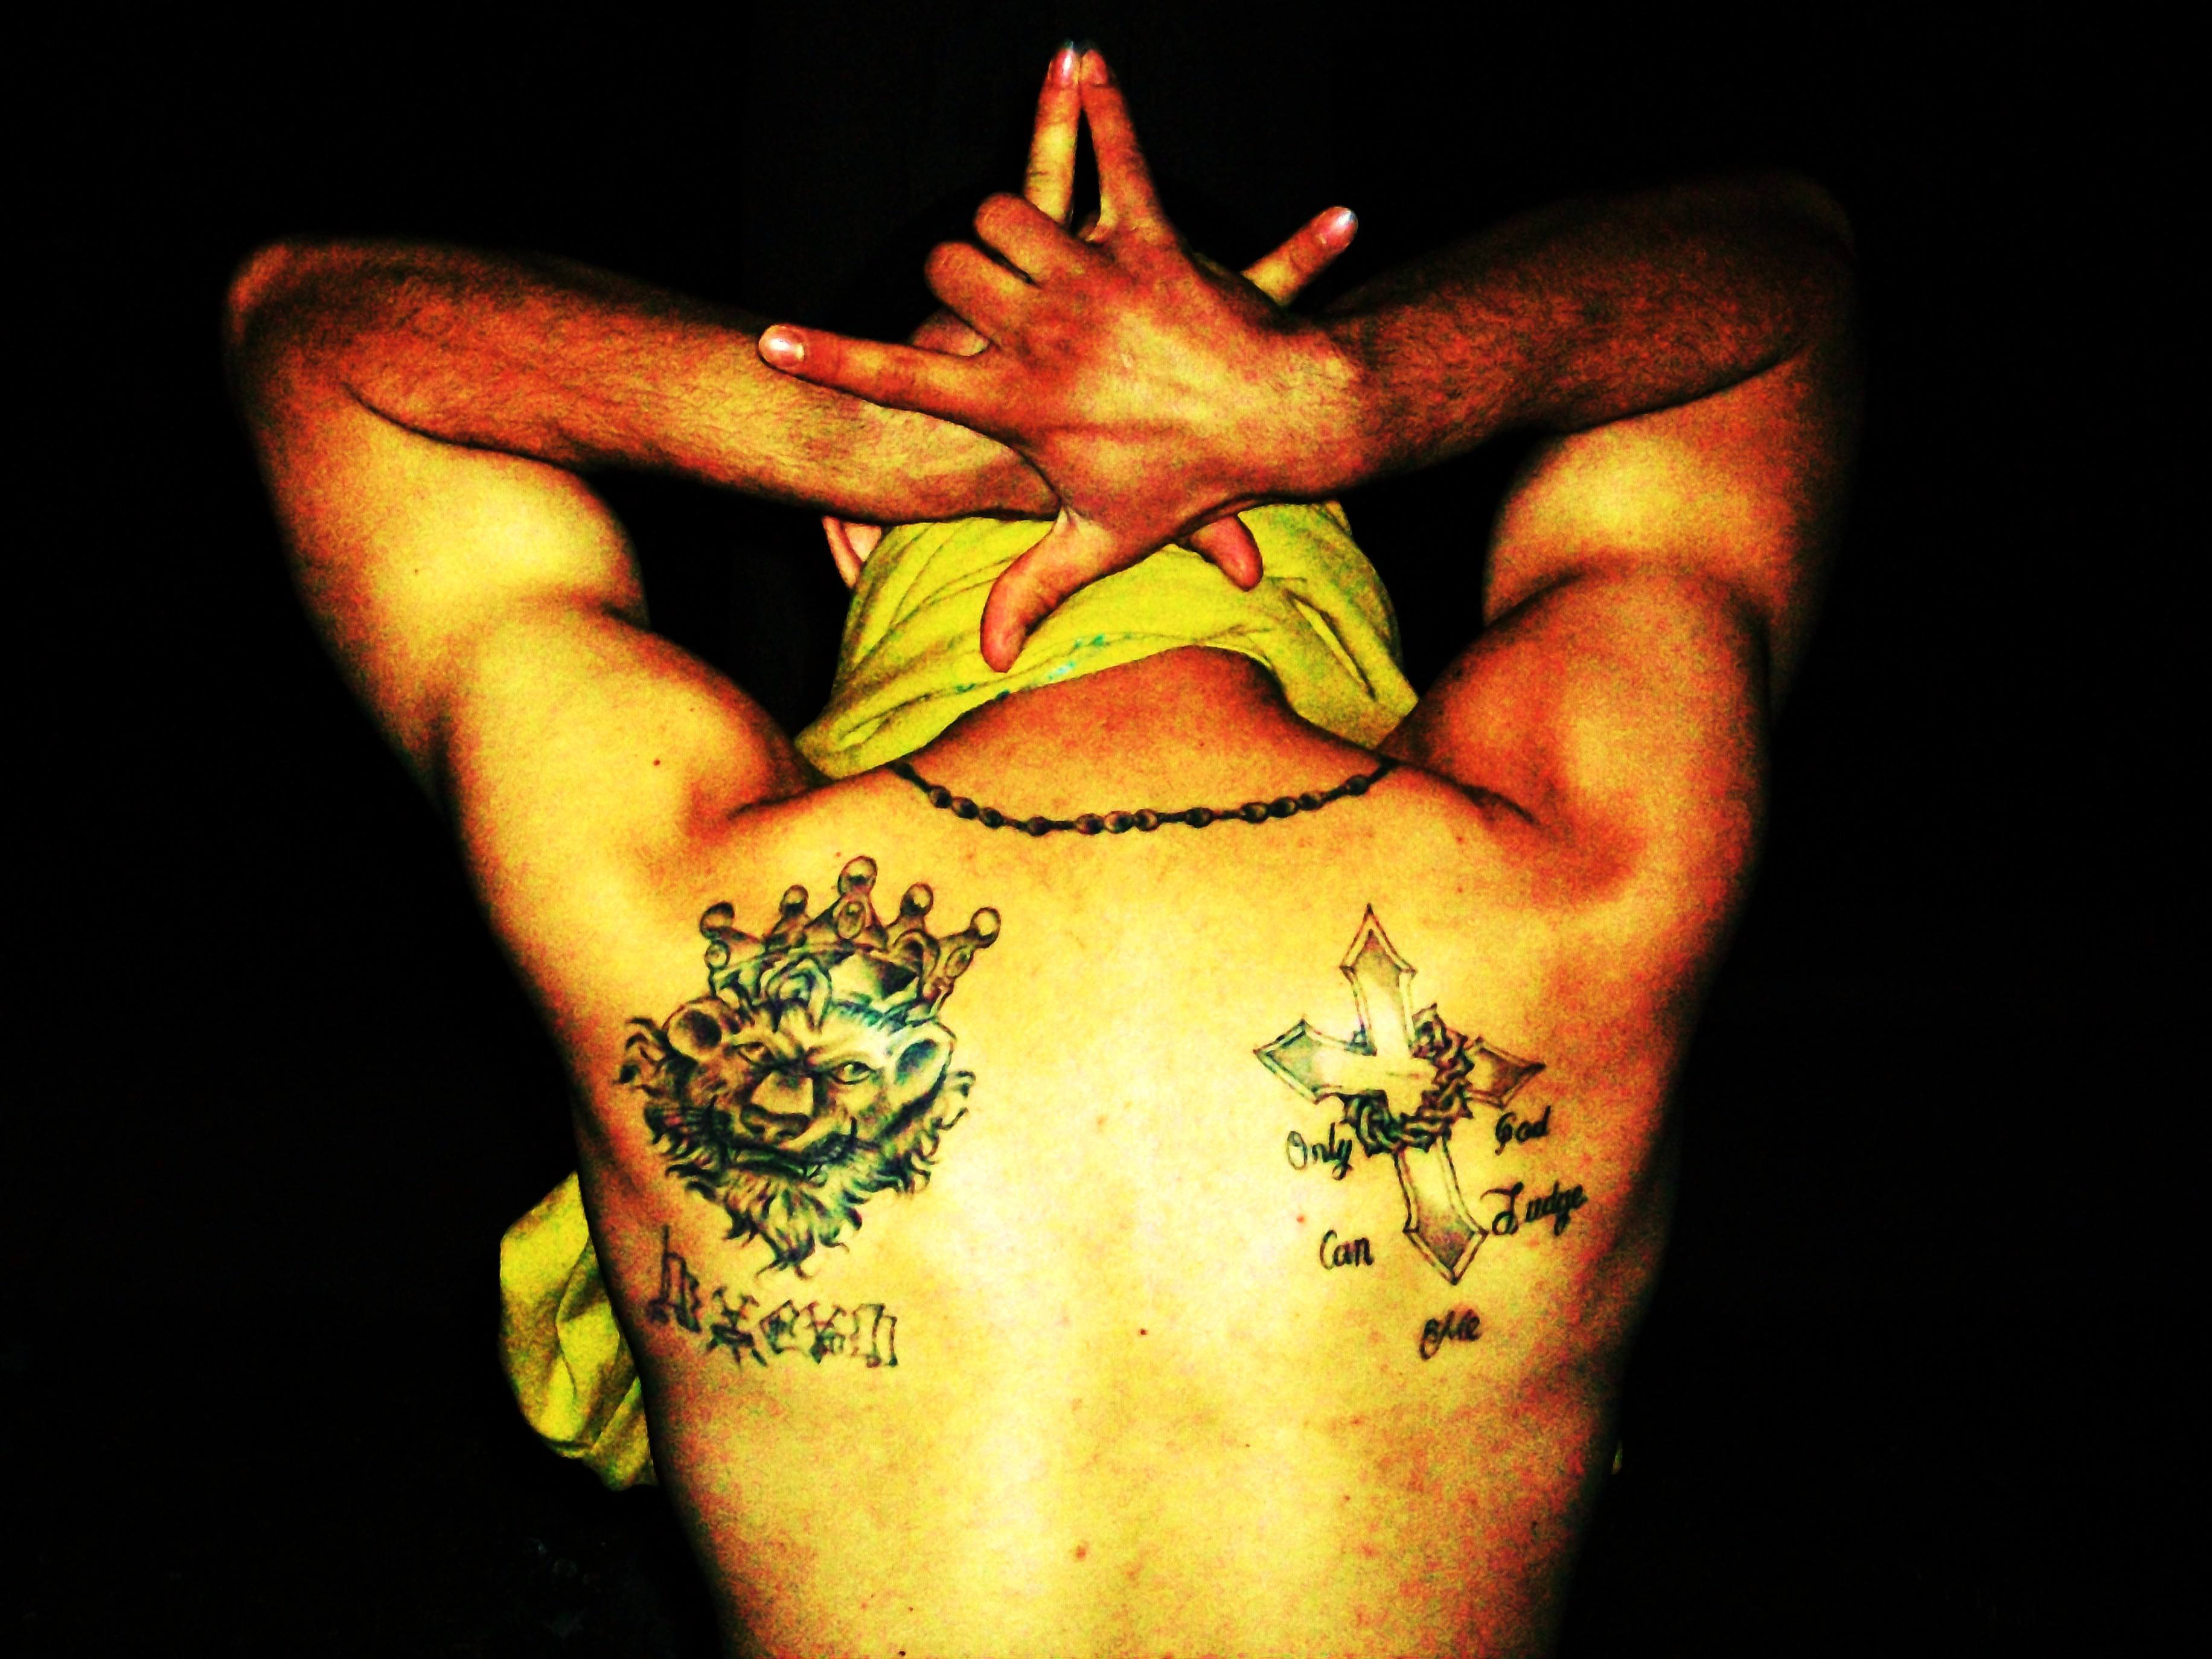 Tattoos and gang sign of Latin Kings gang